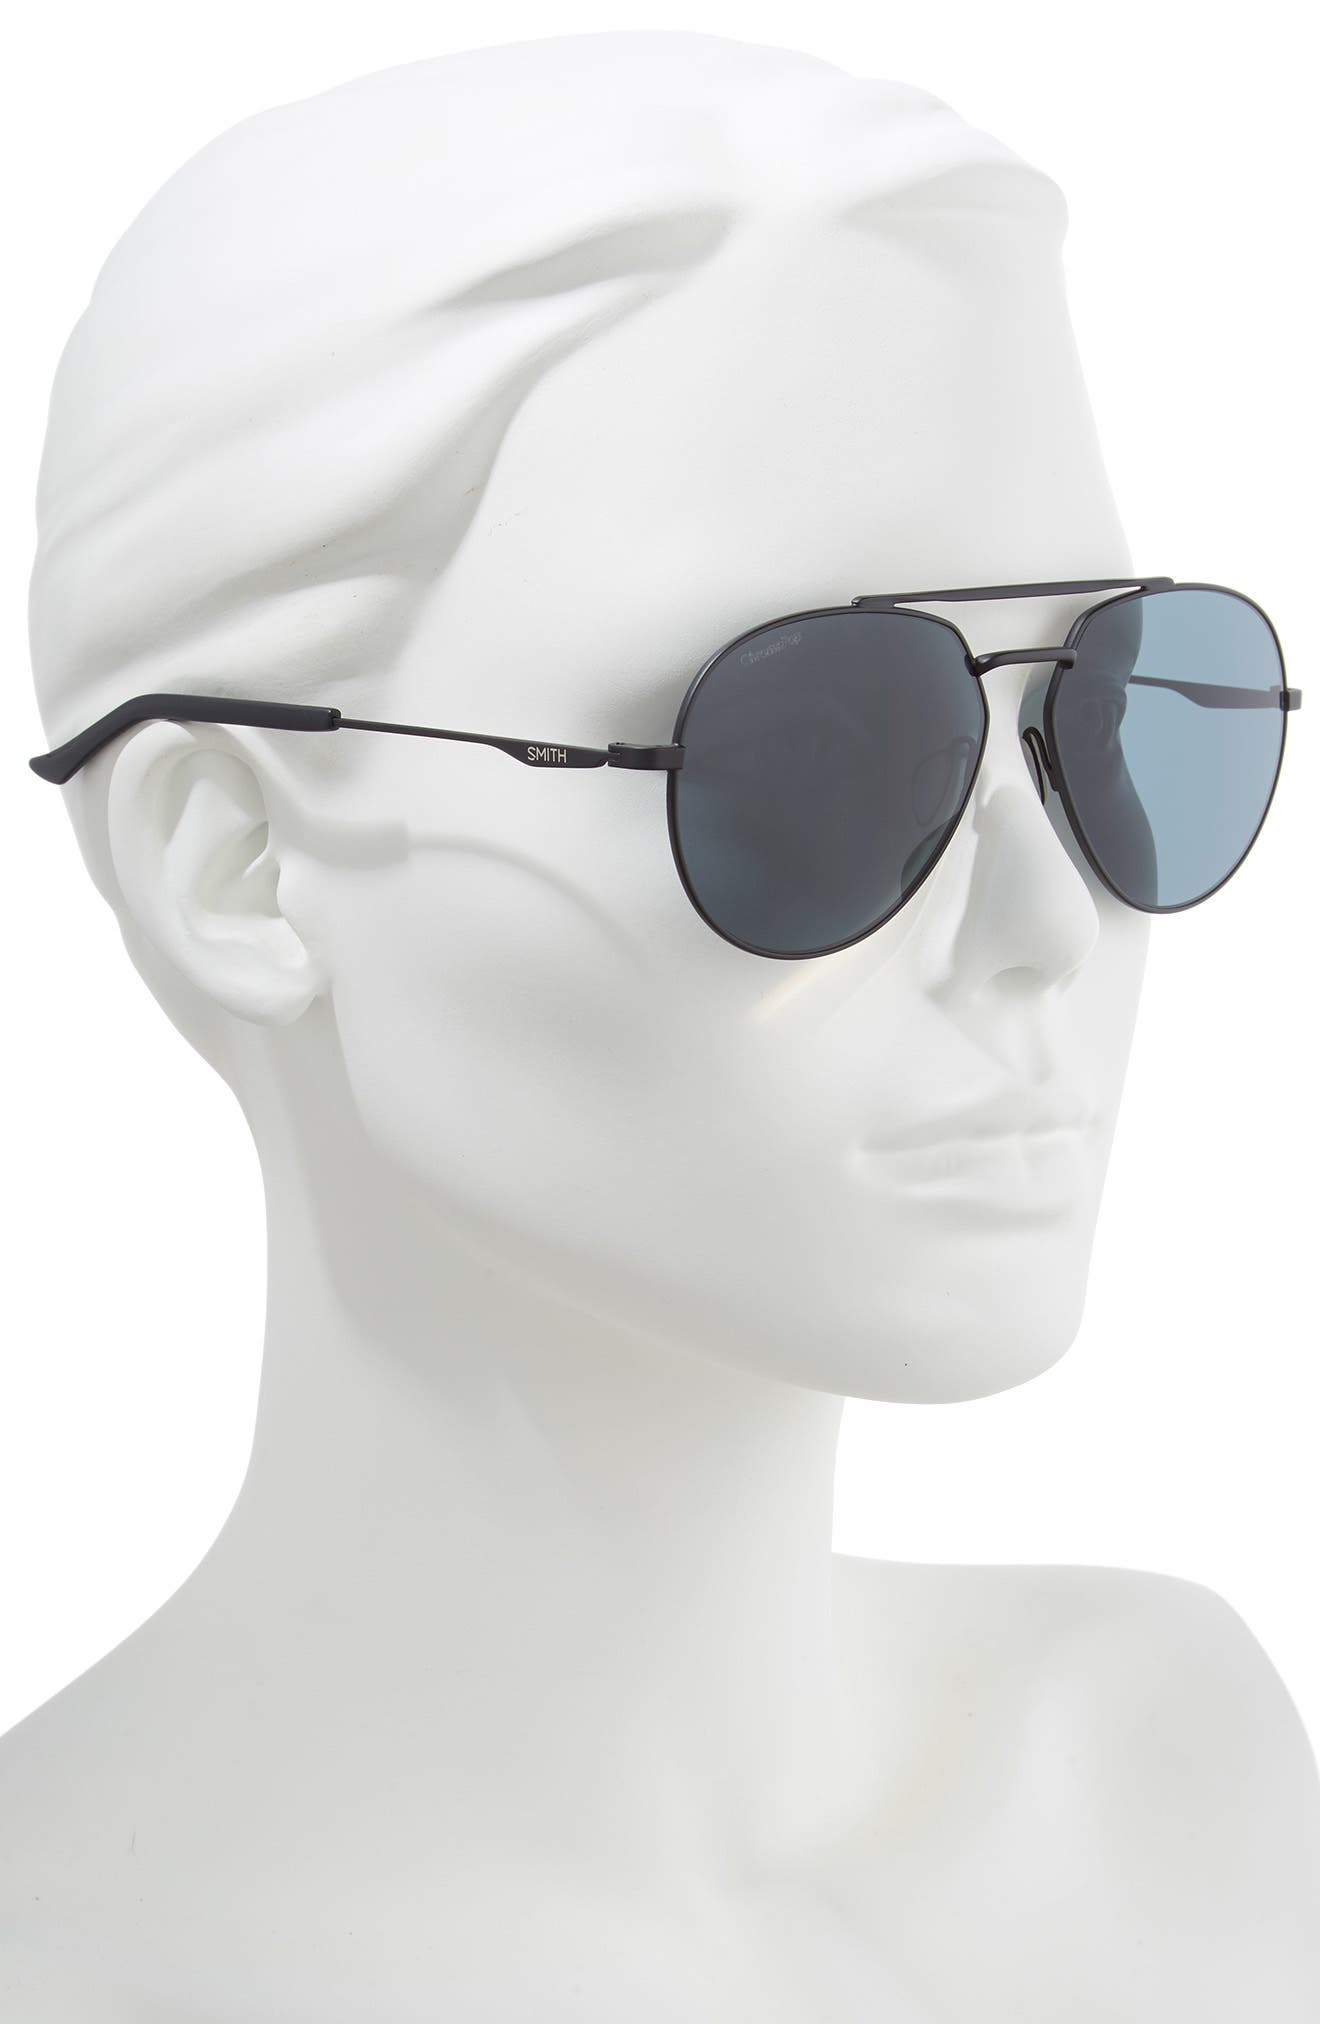 fbd01d06a1d9e Smith Aviator Sunglasses